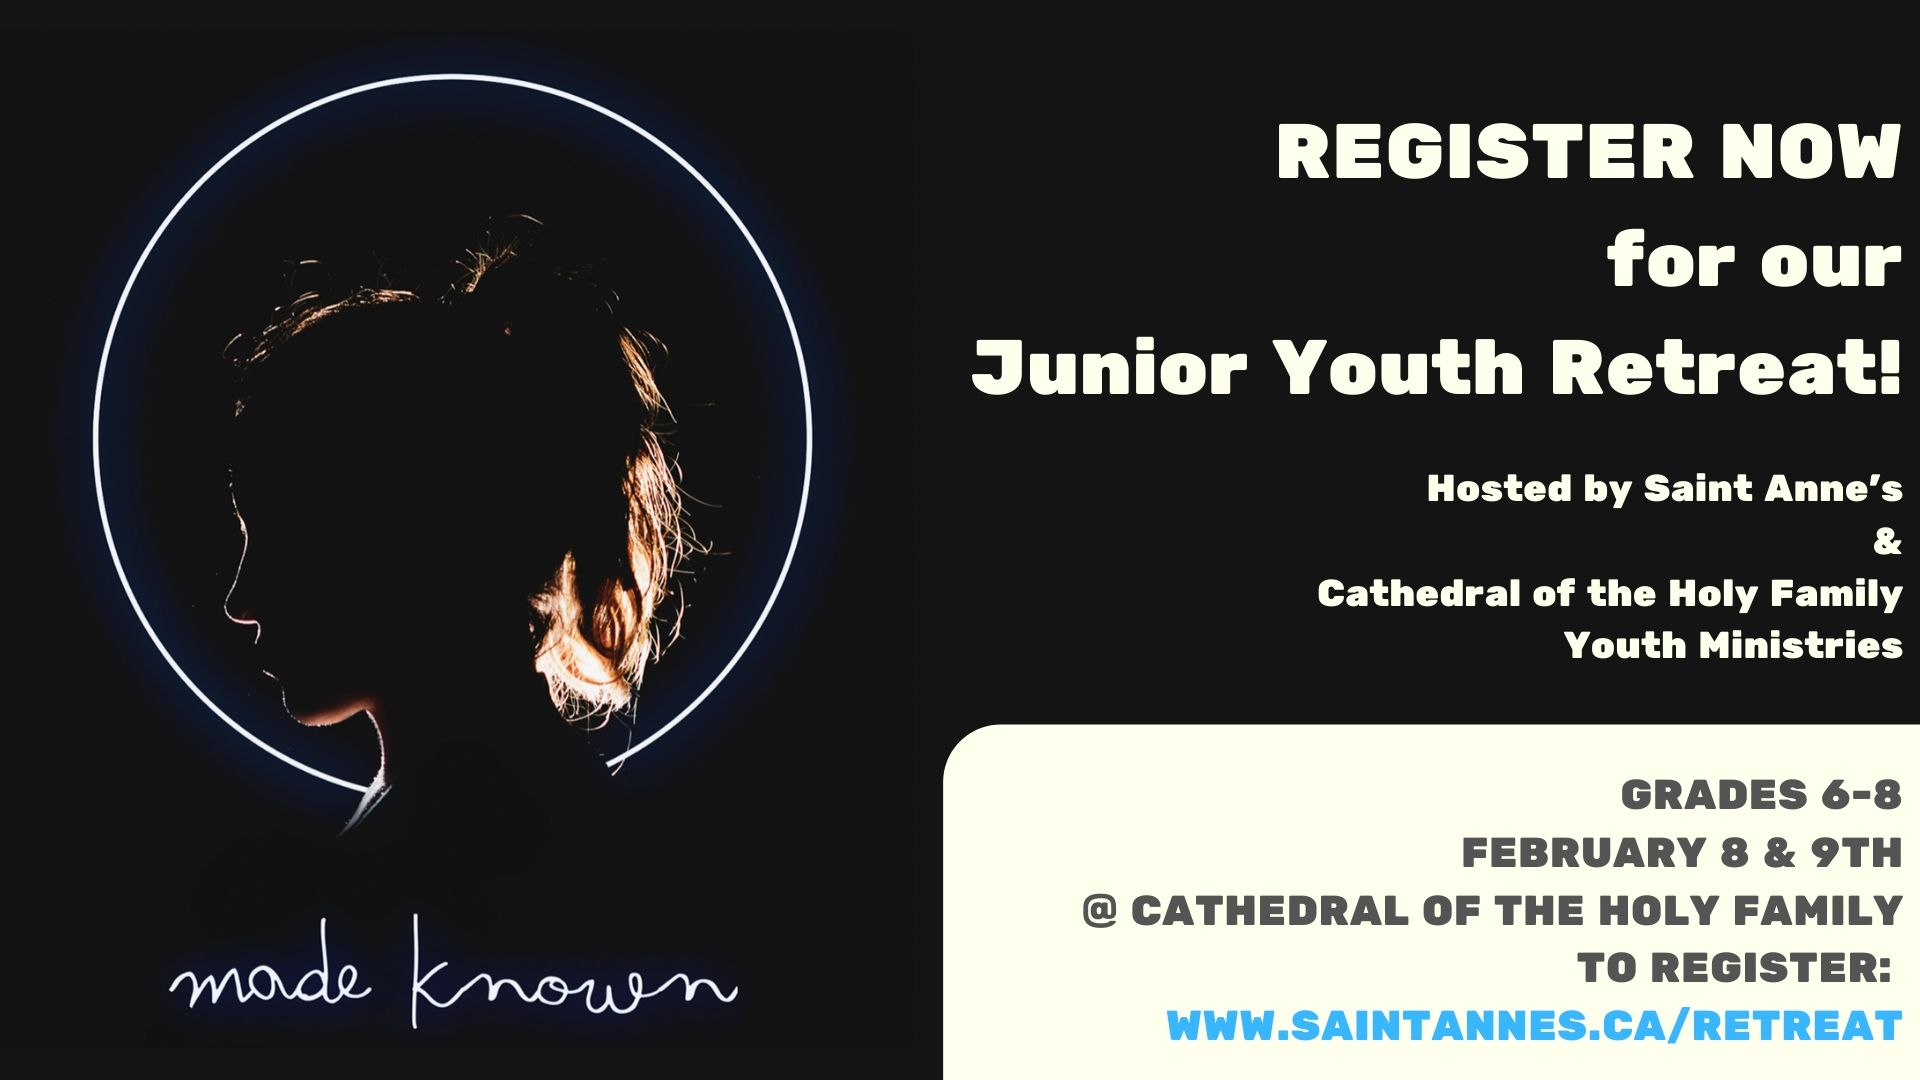 Junior Youth Retreat 2020